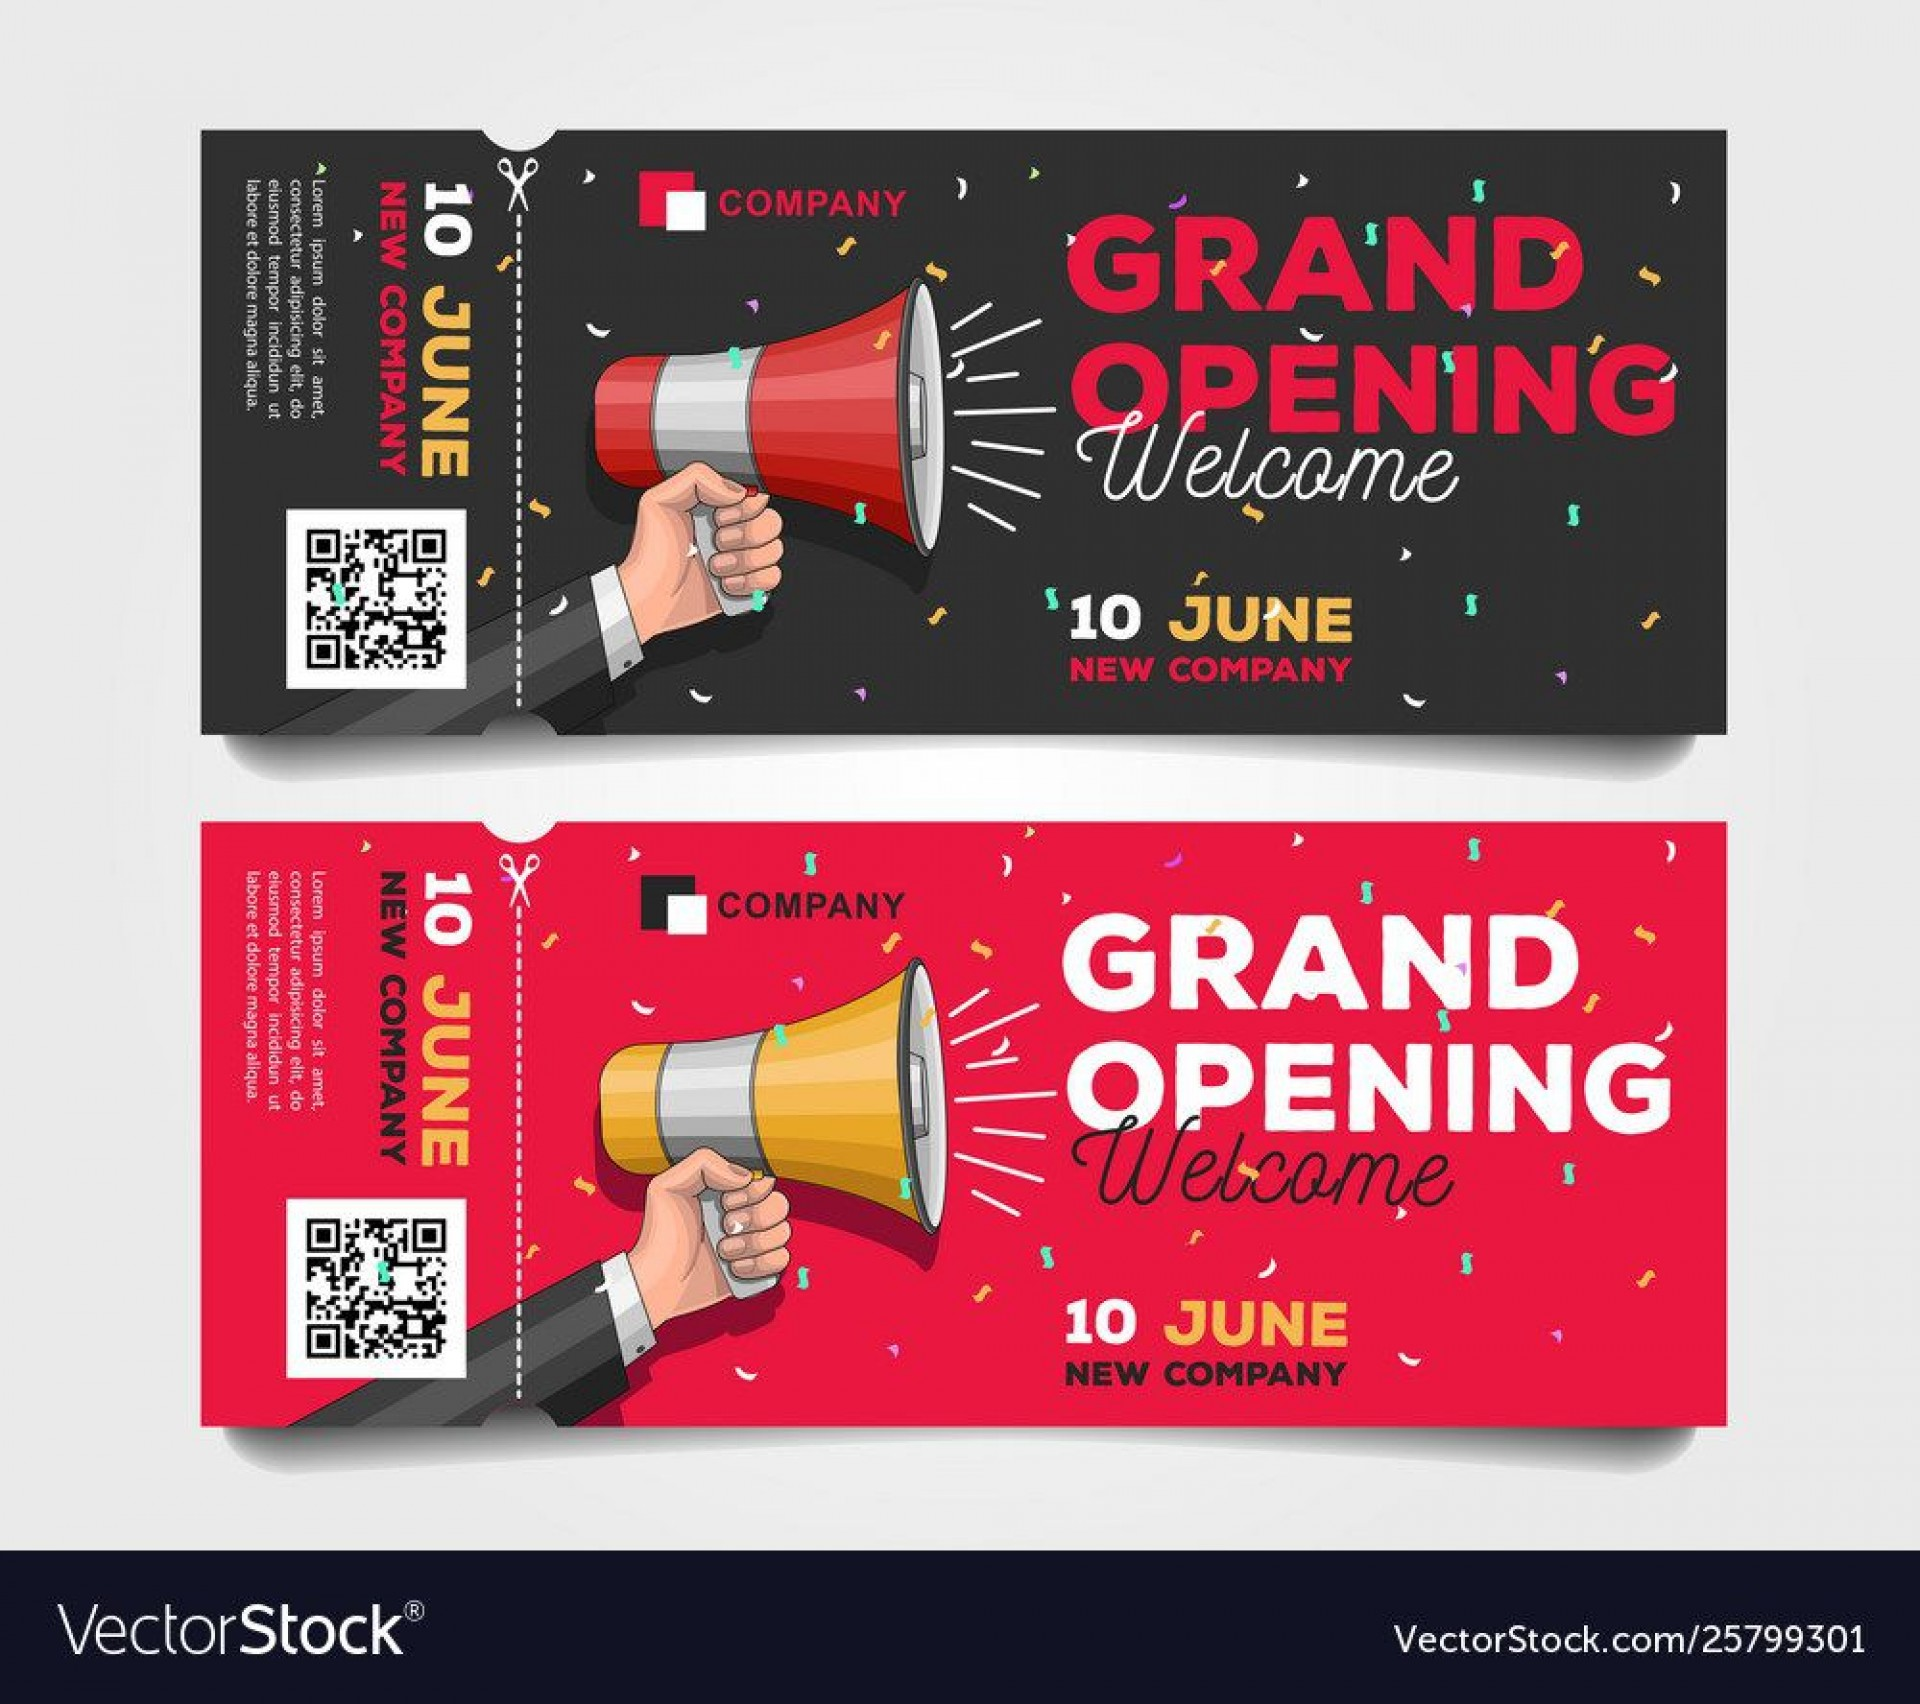 008 Excellent Grand Opening Flyer Template Free Highest Quality  Restaurant1920